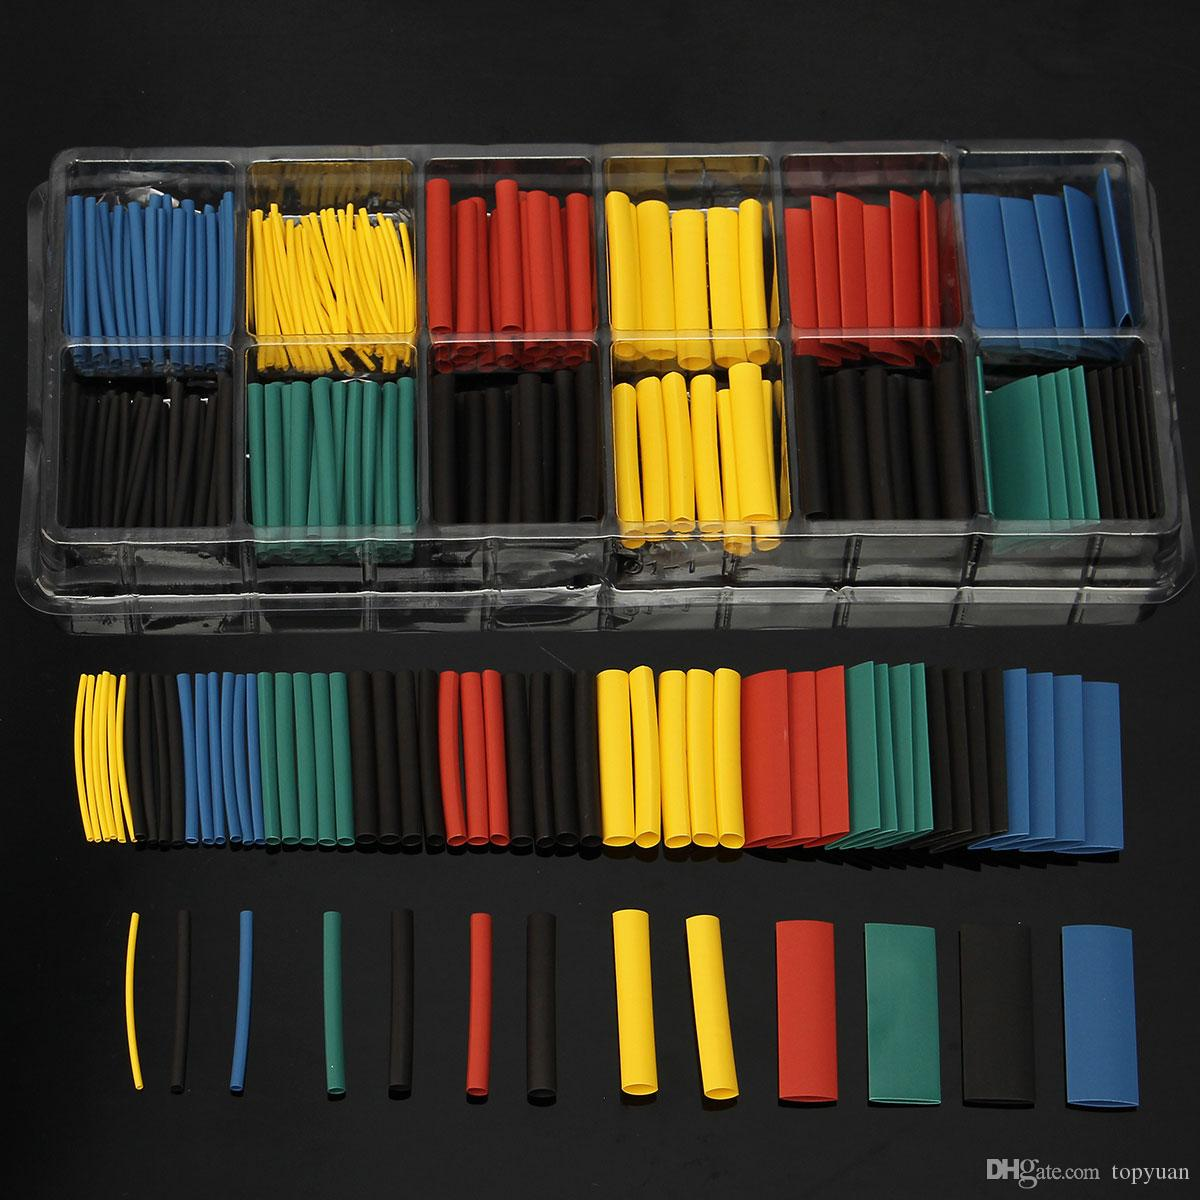 Assortment Ratio 2:1 Heat Shrink Tubing Tube Sleeving Wrap Kit with Box